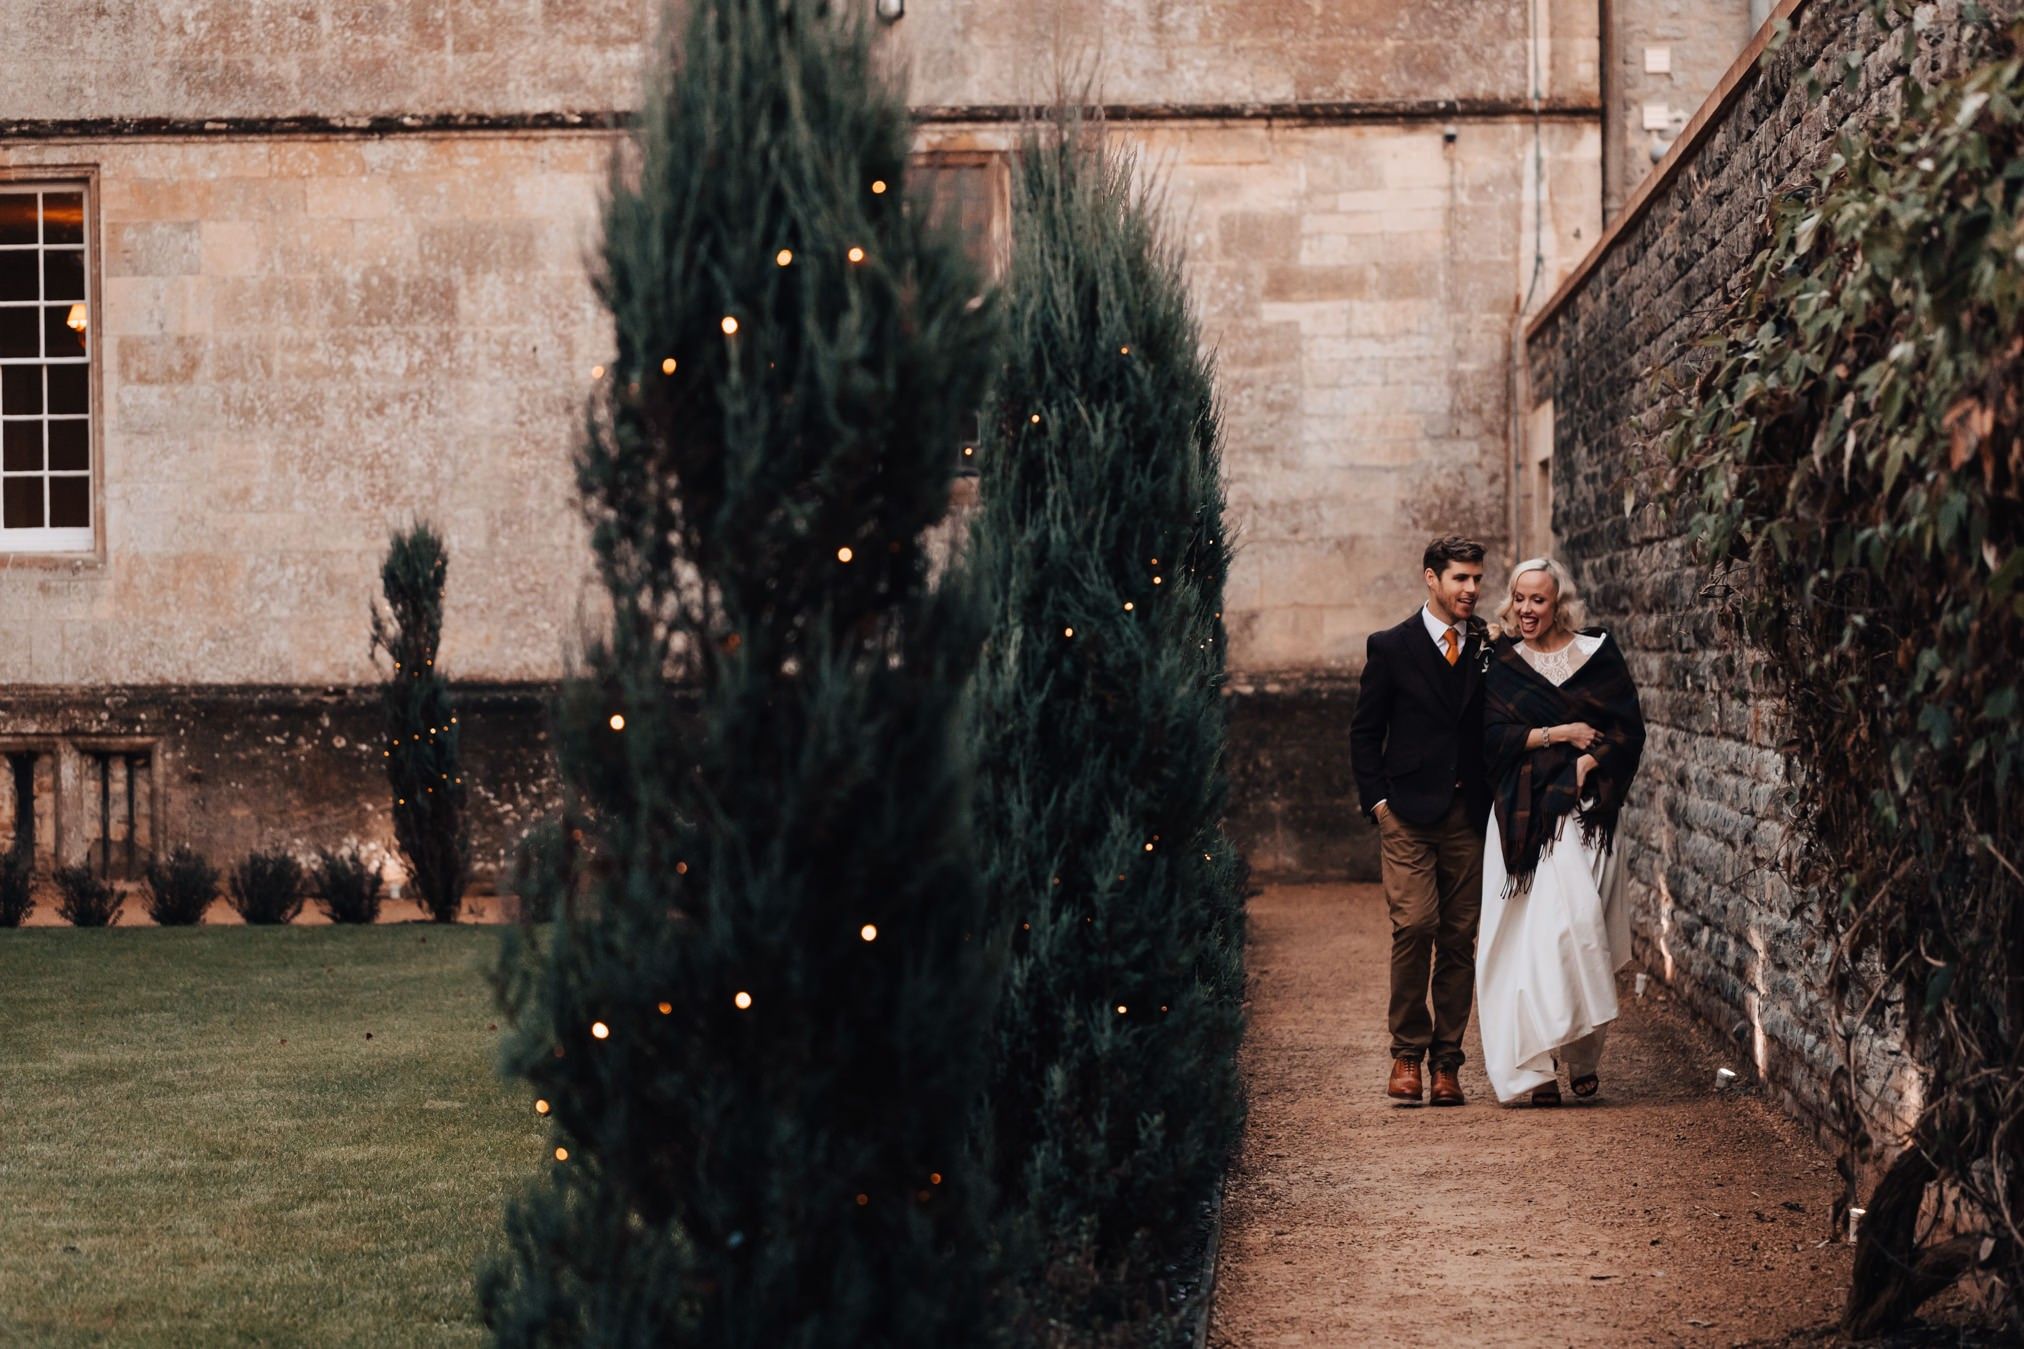 wedding, real wedding, christmas wedding, manor wedding, bride, wedding inspiration, wedding ideas